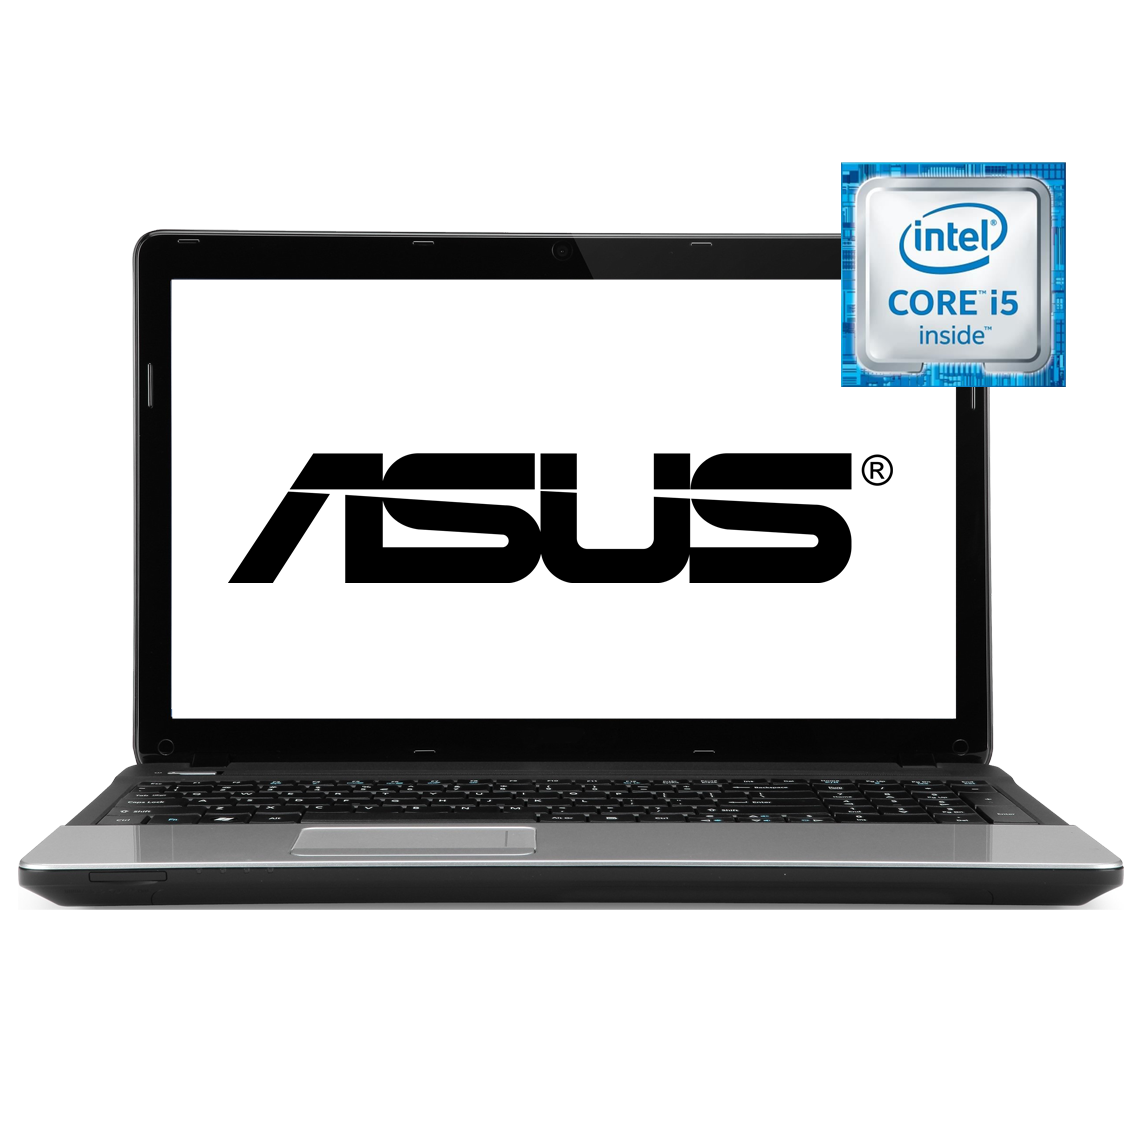 ASUS - 15.6 inch Core i5 2nd Gen